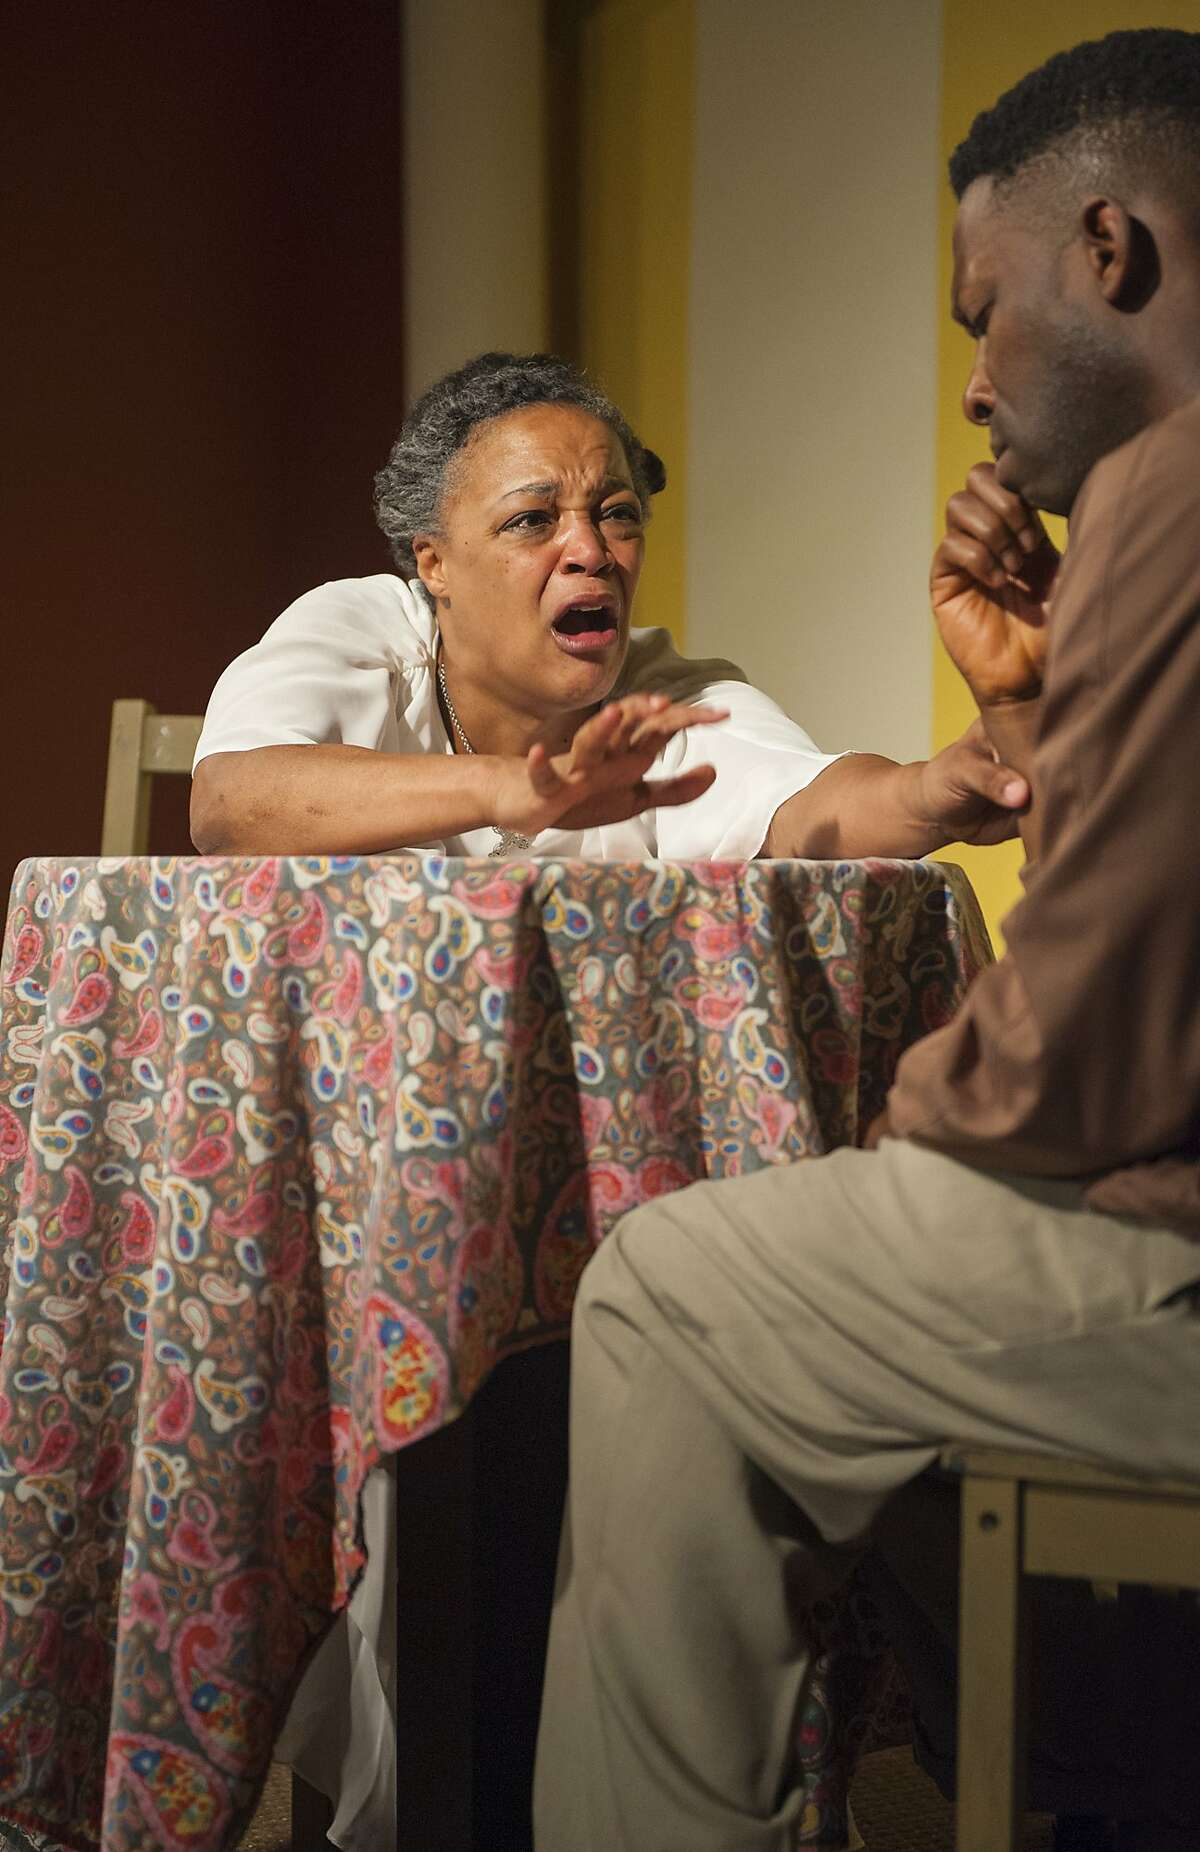 Margaret (Cathleen Riddley) fights to keep her son David (Rotimi Agbabiaka) safe in AlterTheater's production of